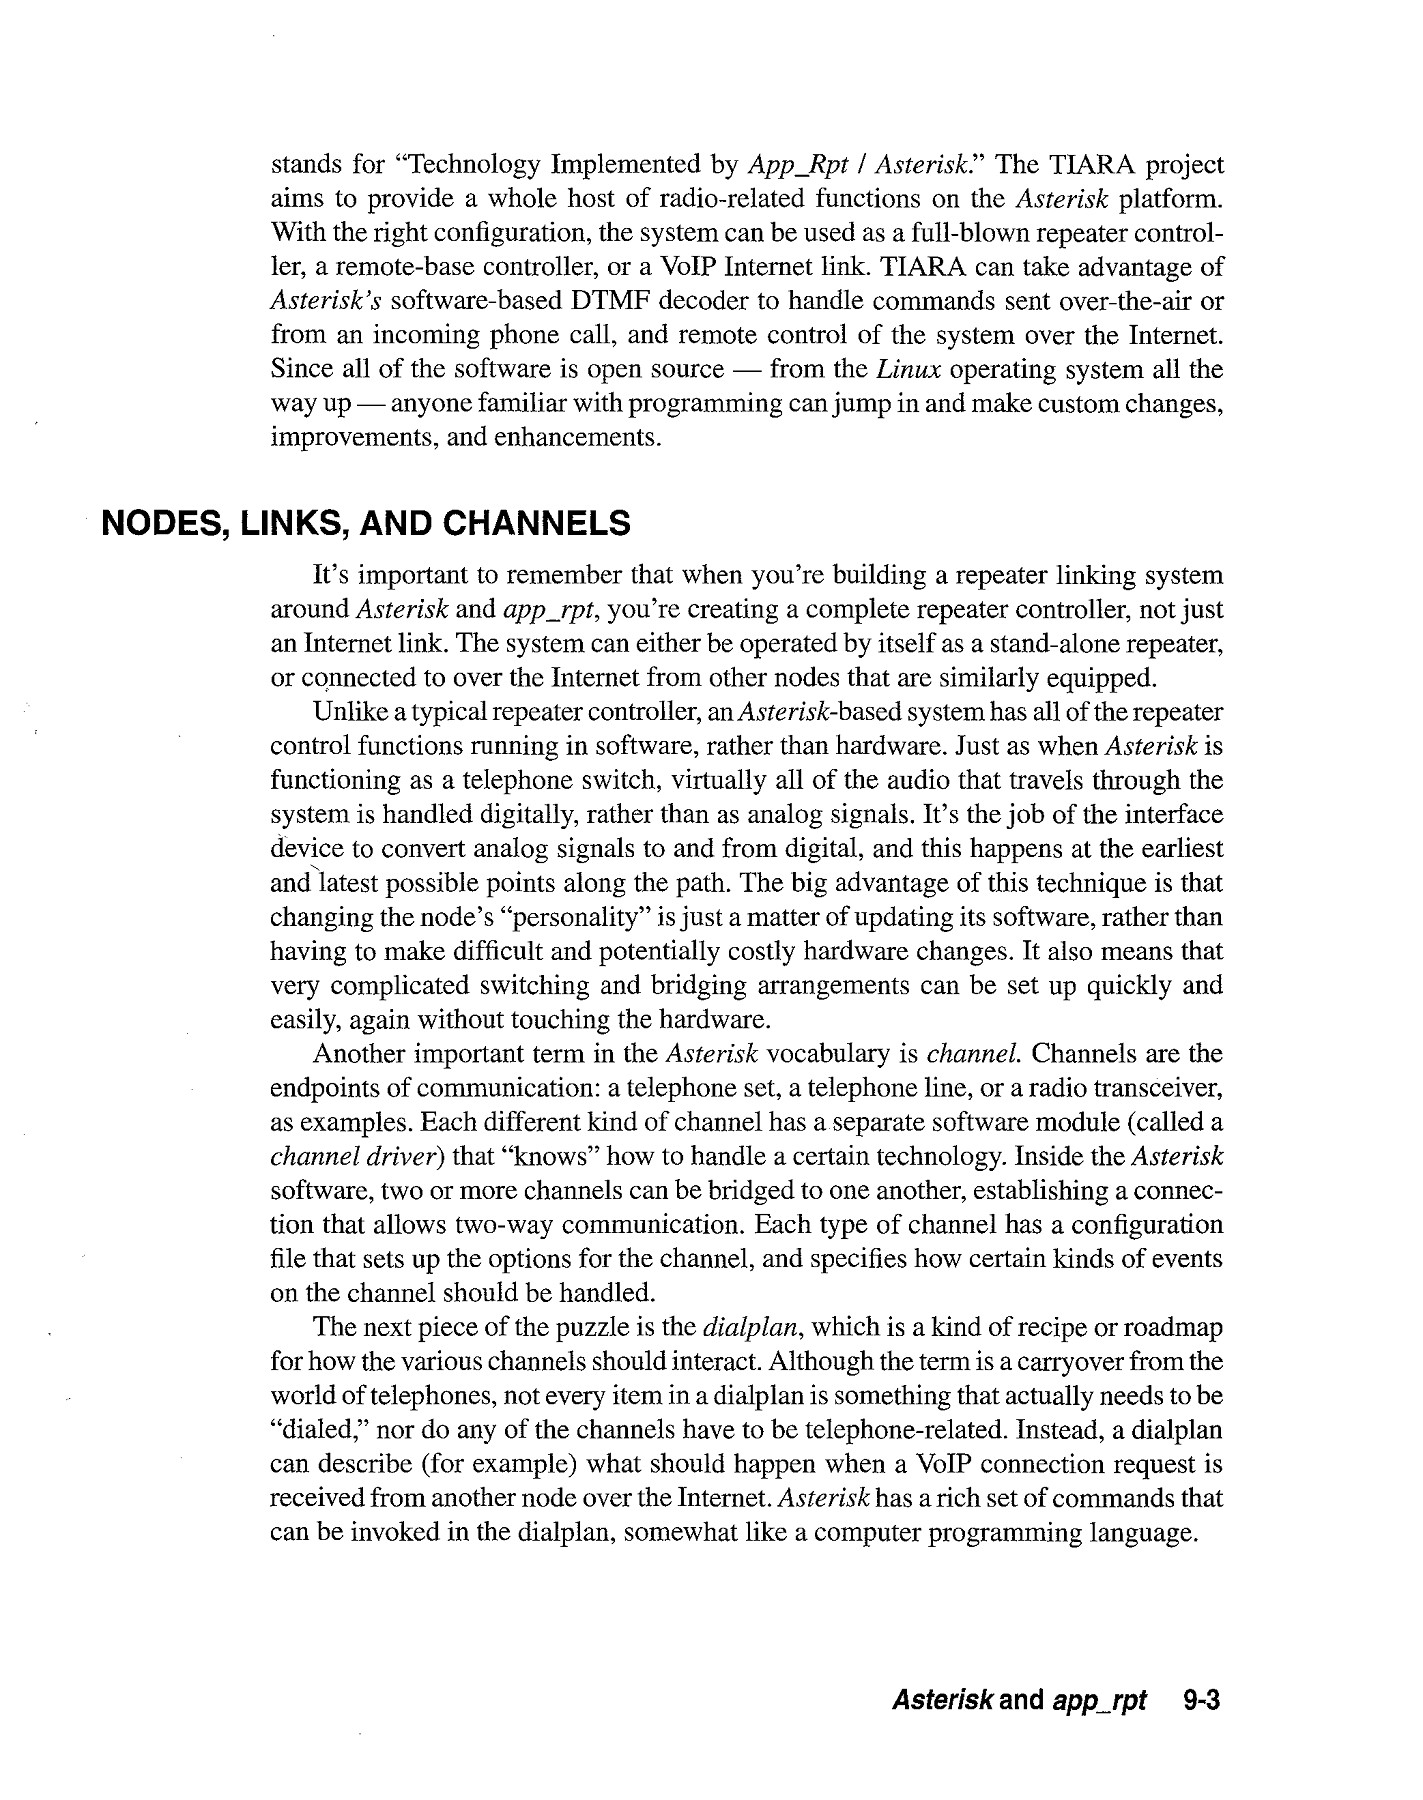 Chapter 9 Asterisk and app rpt - QSL net Pages 1 - 7 - Text Version